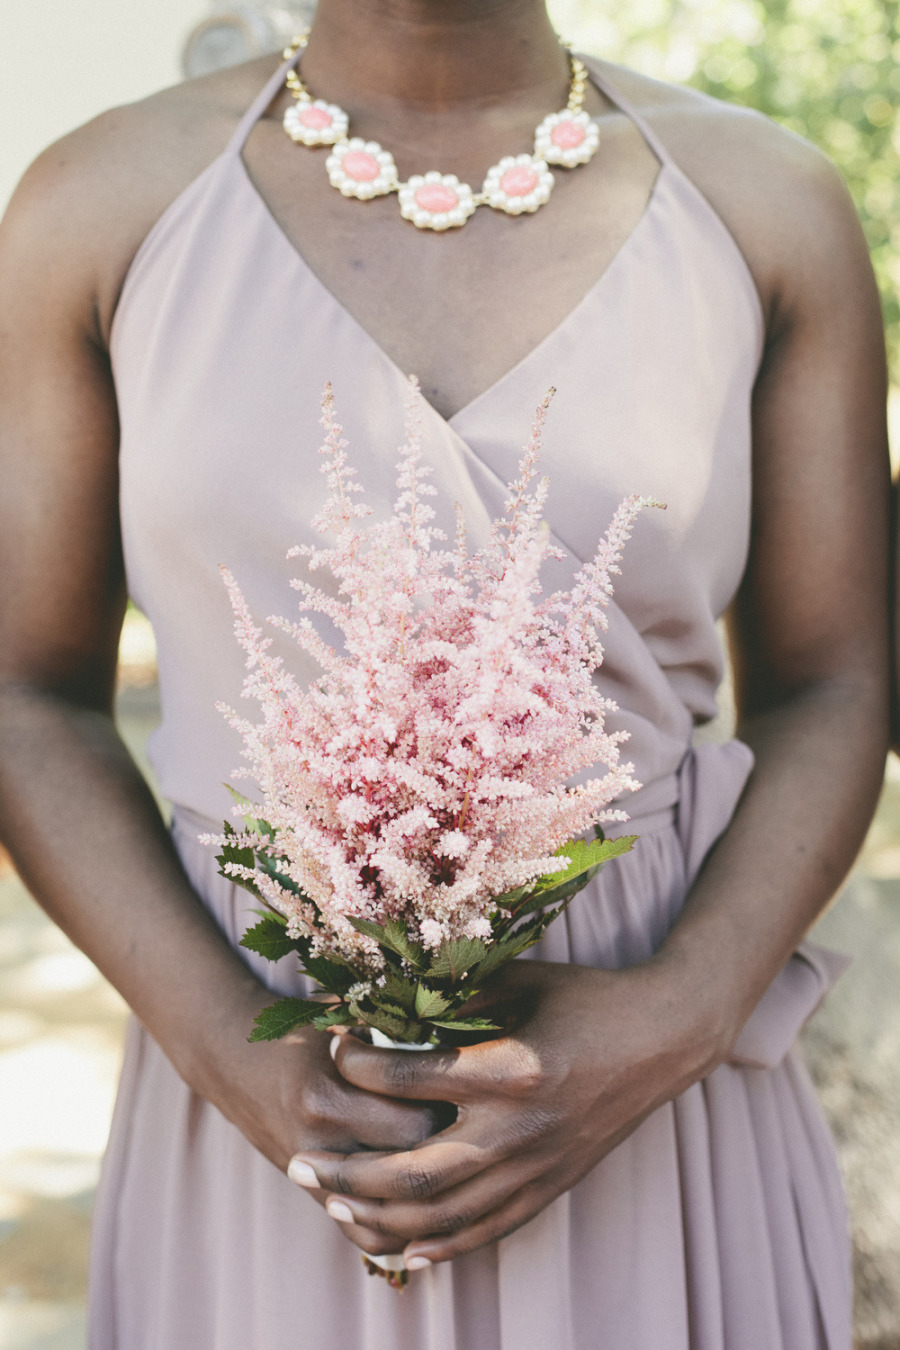 Image by Onelove Photography via Style Me Pretty